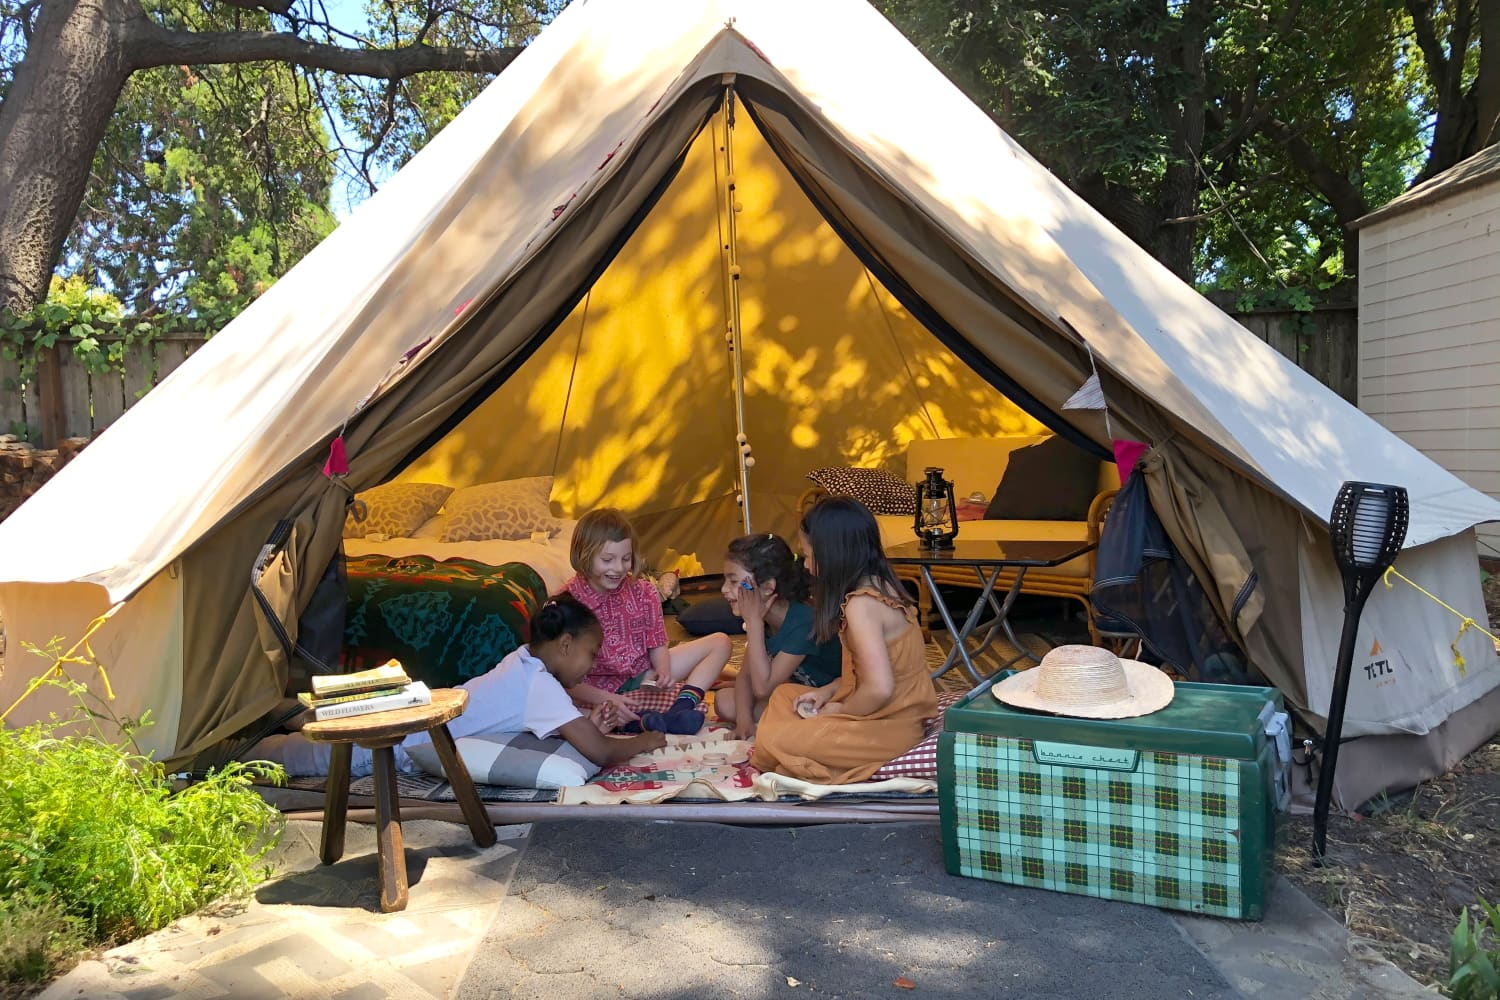 My Plan for a Very Memorable At-Home Campout